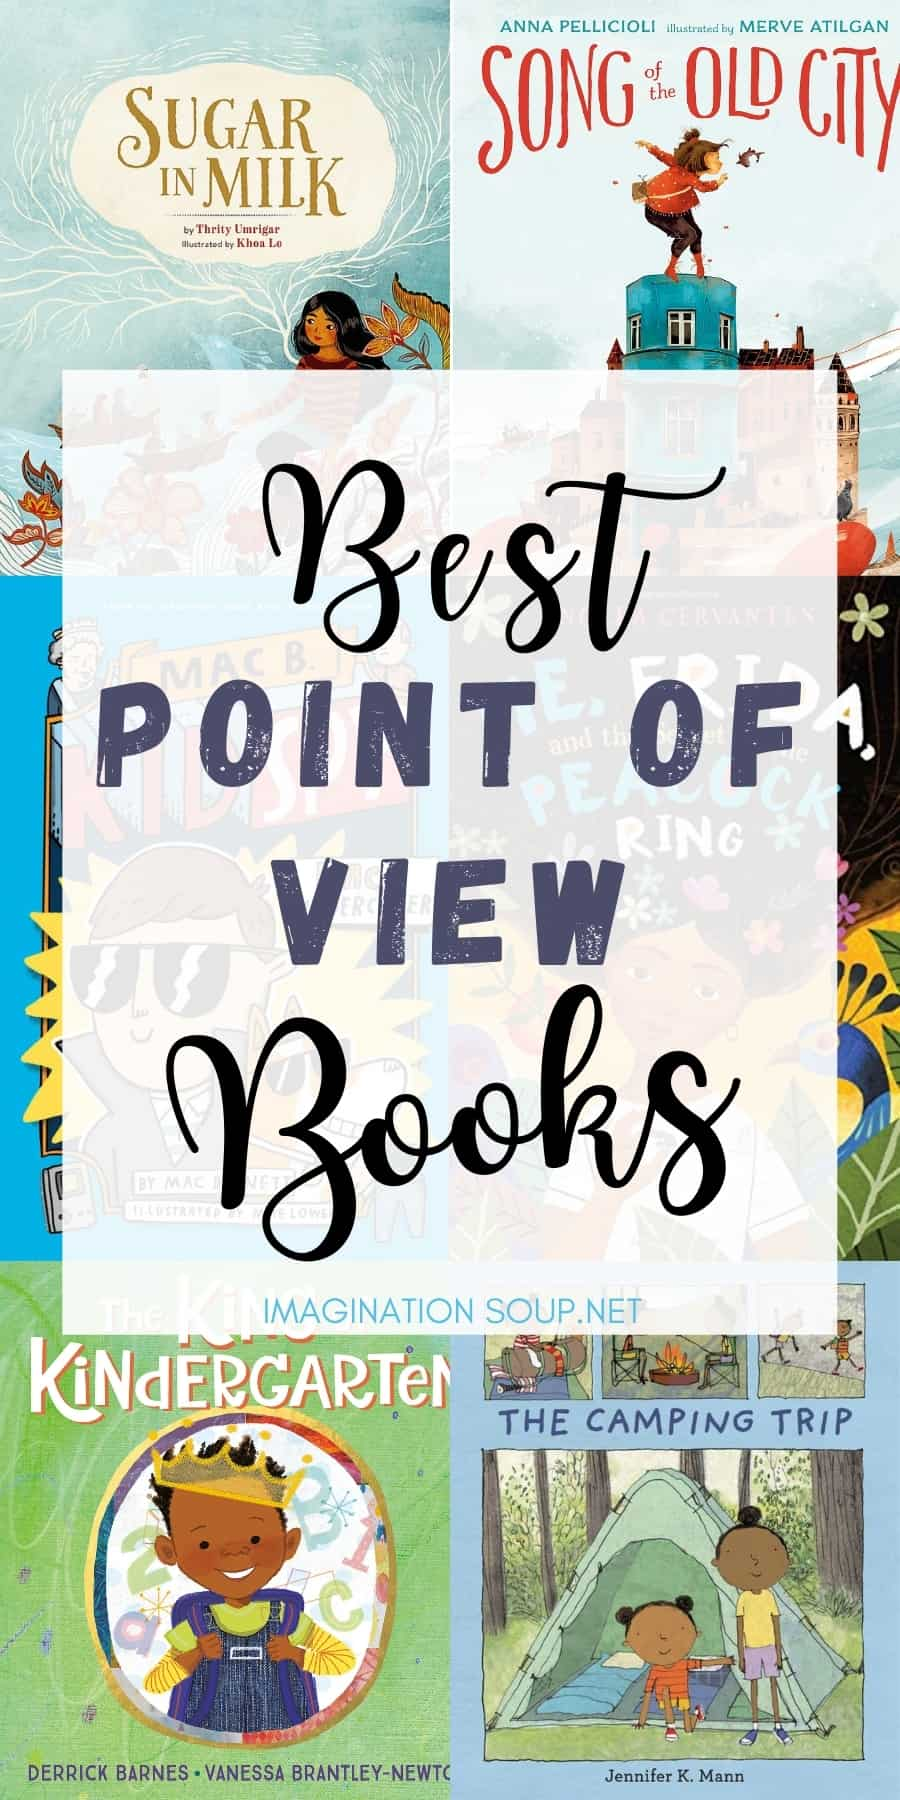 teach point of view with these children's book examples (mentor texts)